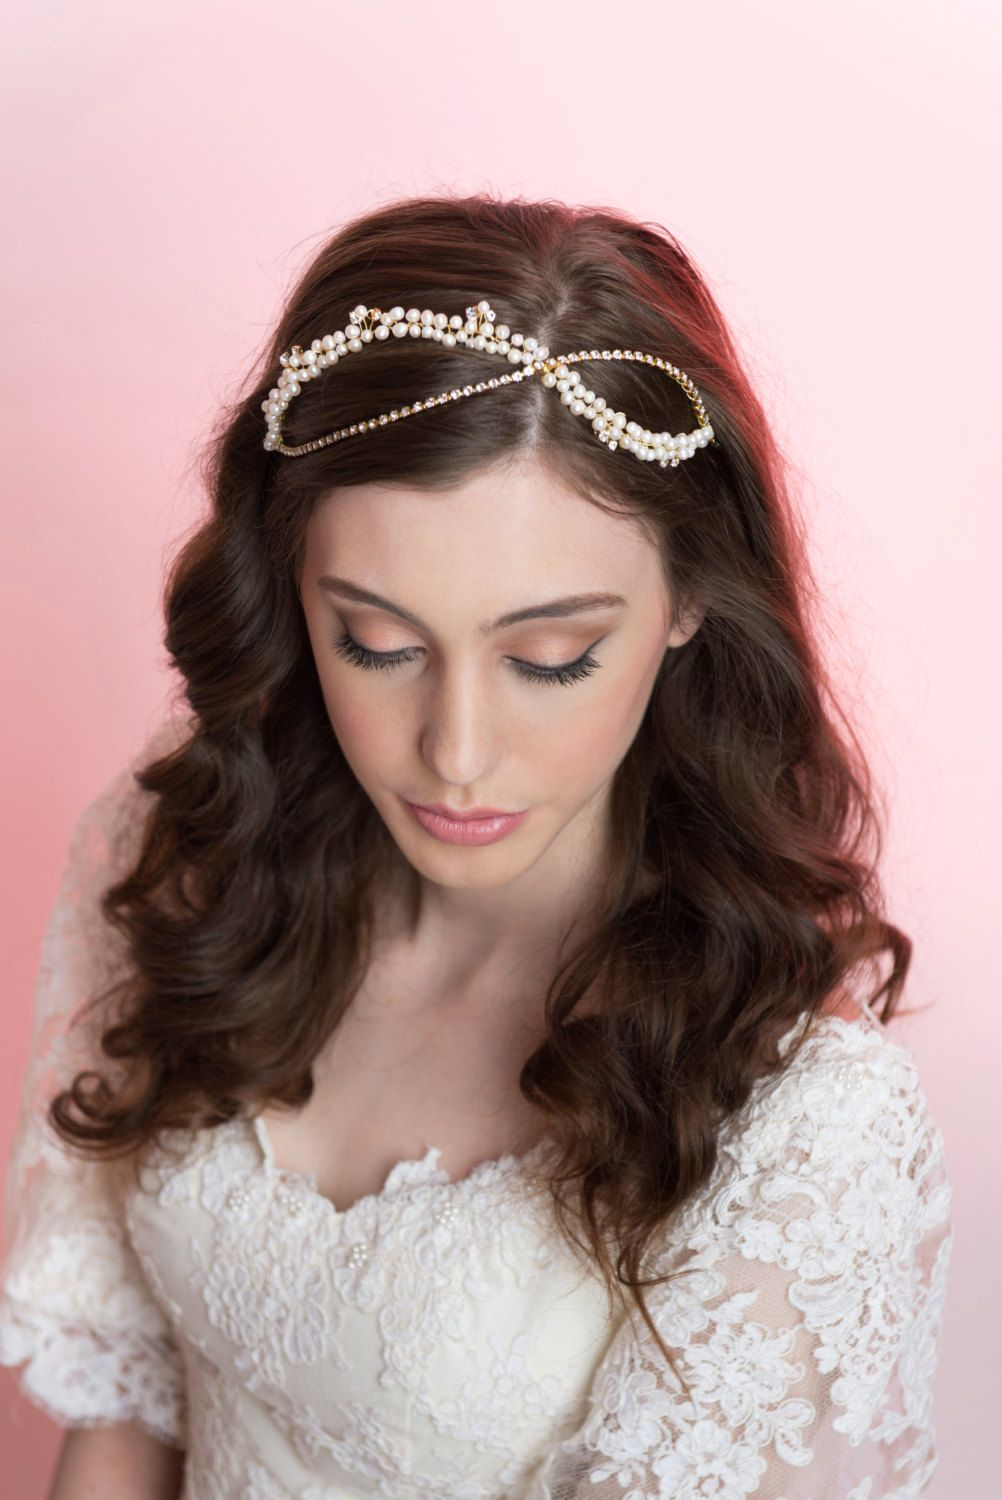 Bridal Halo Wedding Hair Pearls and Swarovski Crystals Halo by MilaKolitsova on Etsy